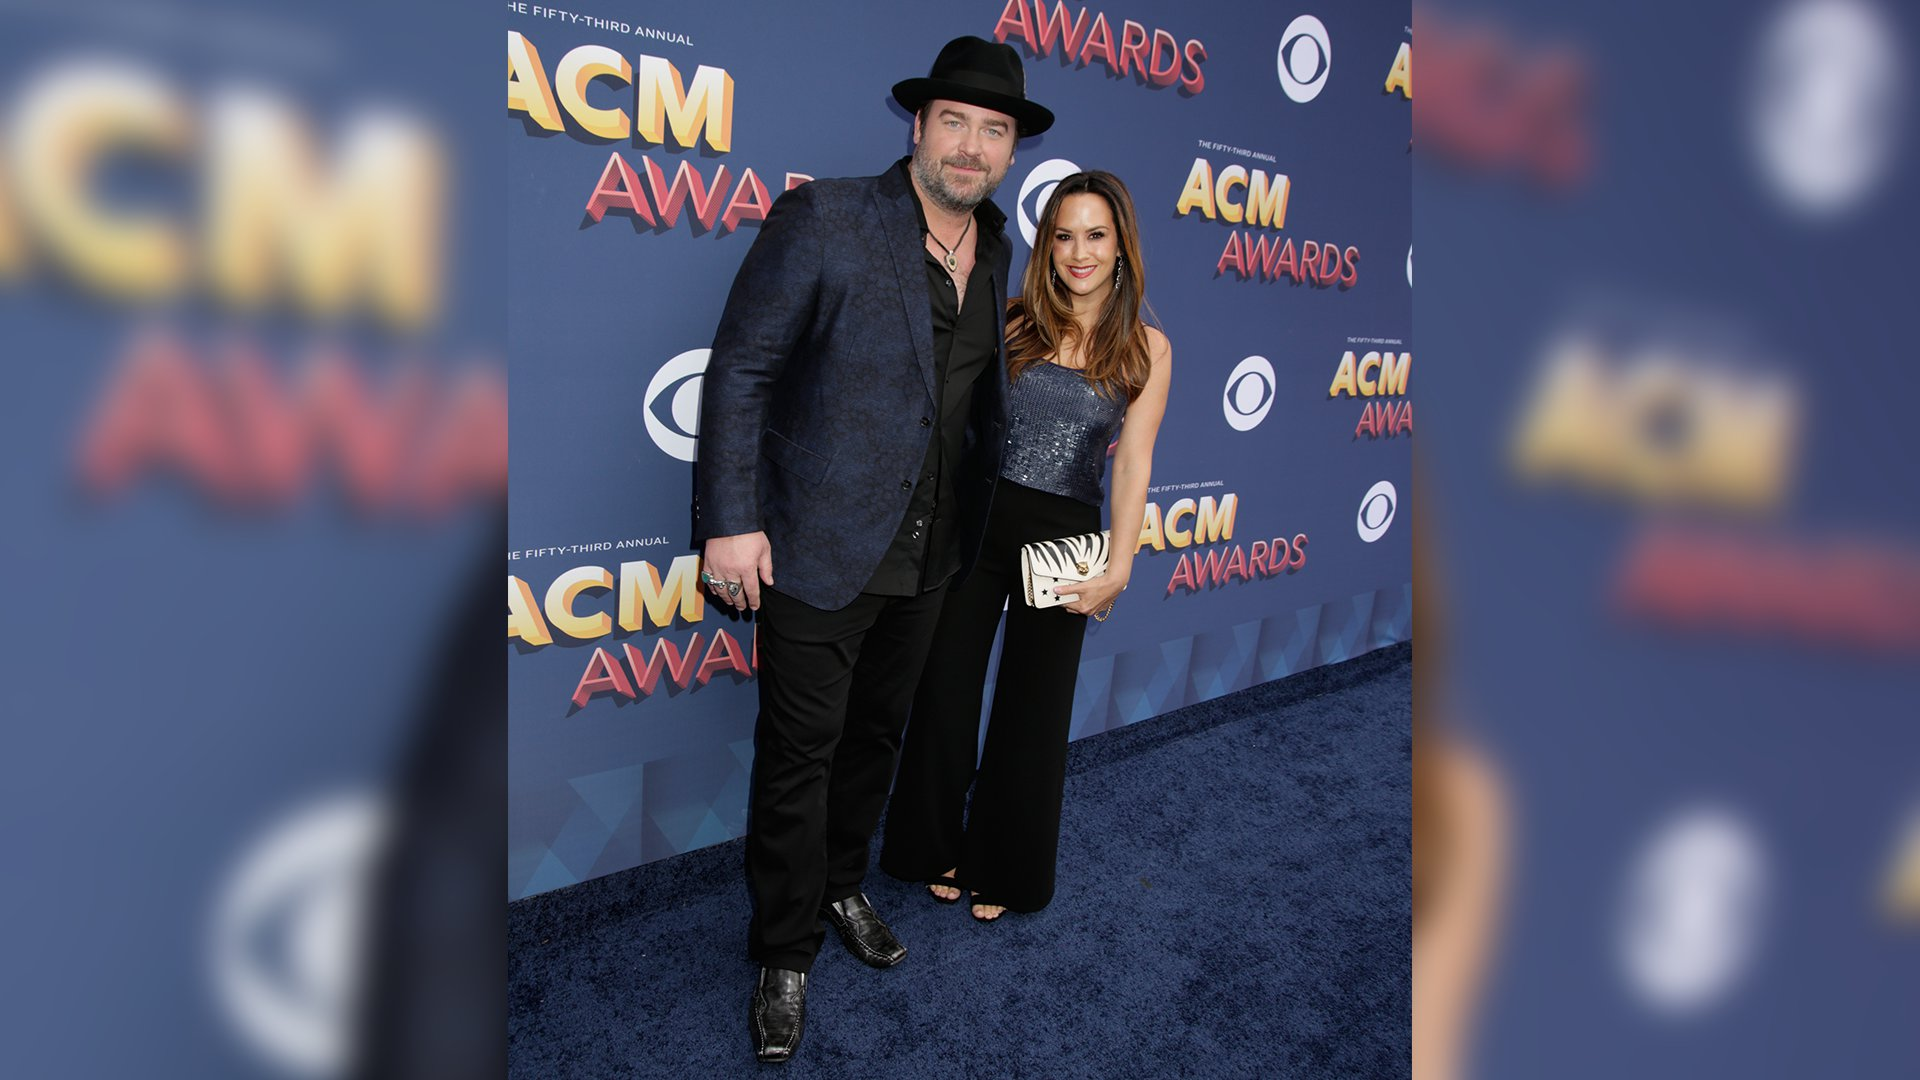 It's always great to see Lee Brice at the ACM Awards.